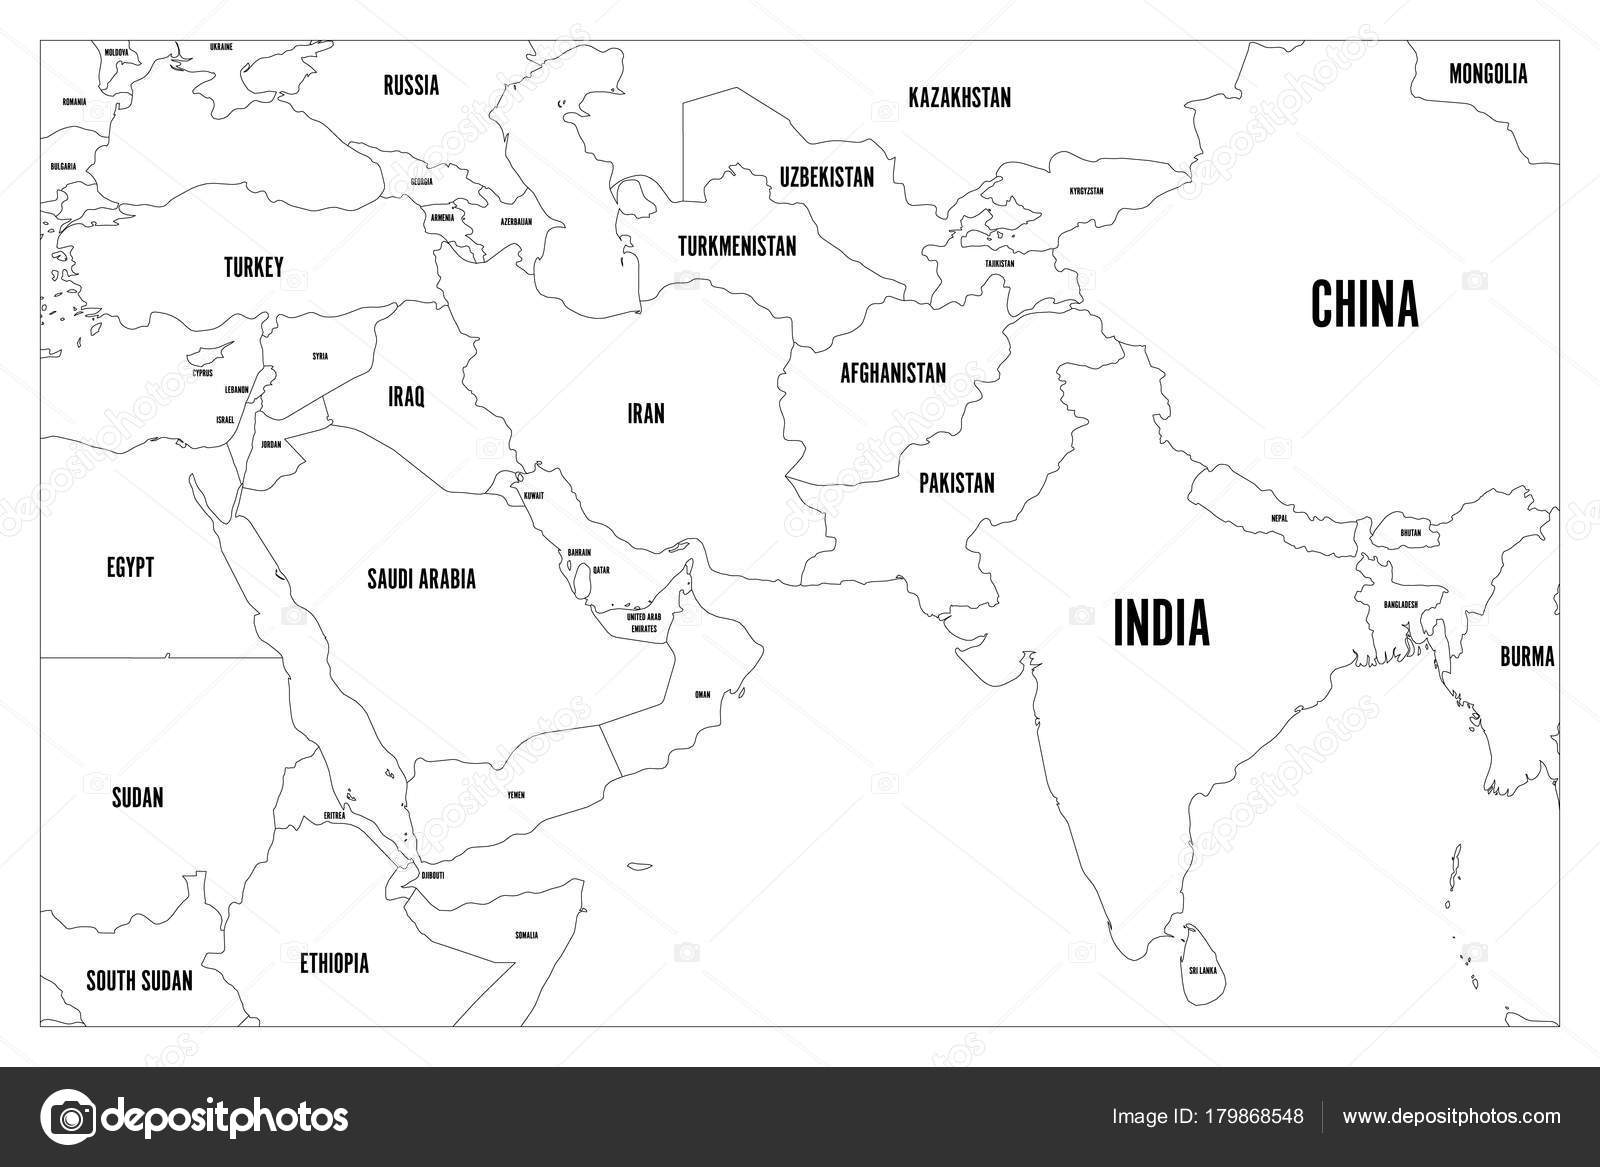 Political Map Of South Asia And Middle East Countries